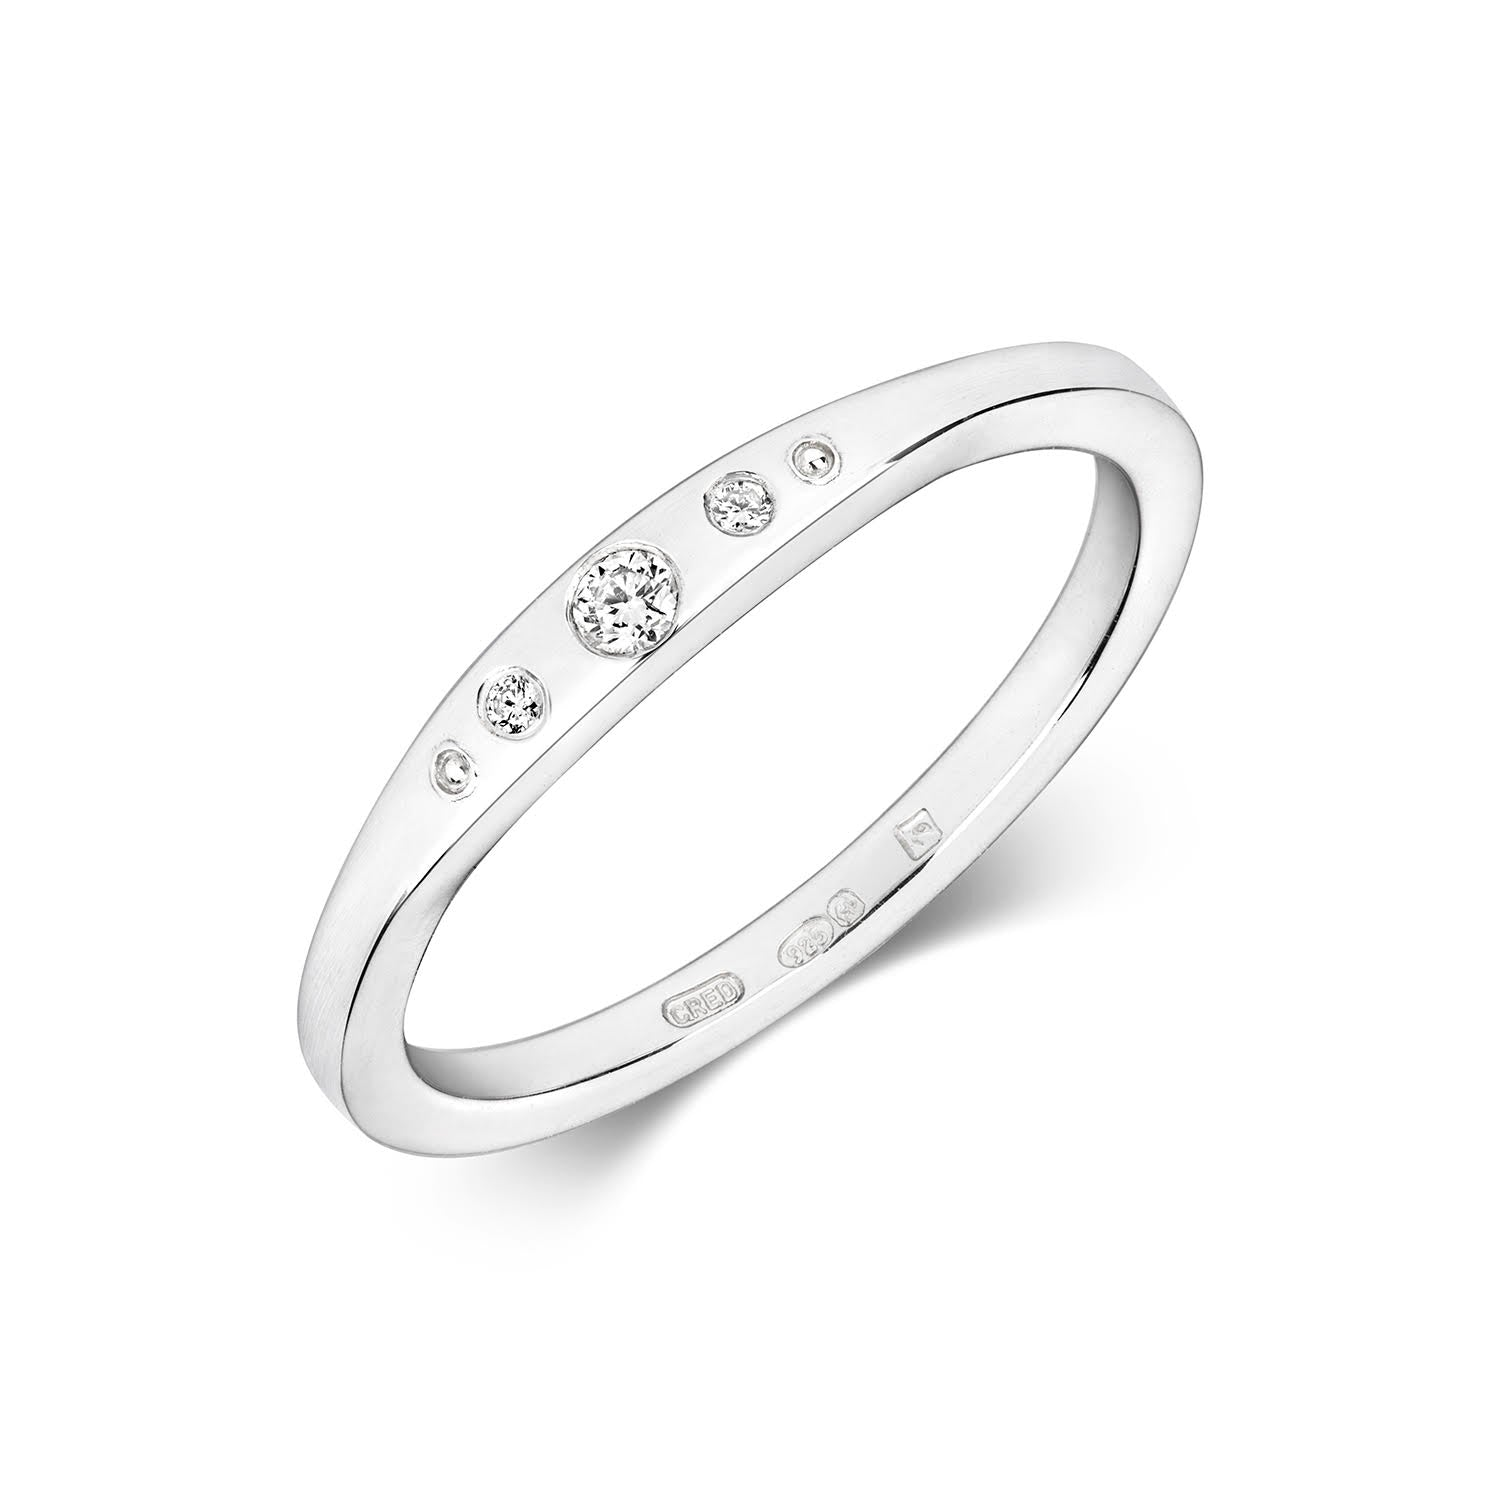 Fairtrade Silver Promise Ring